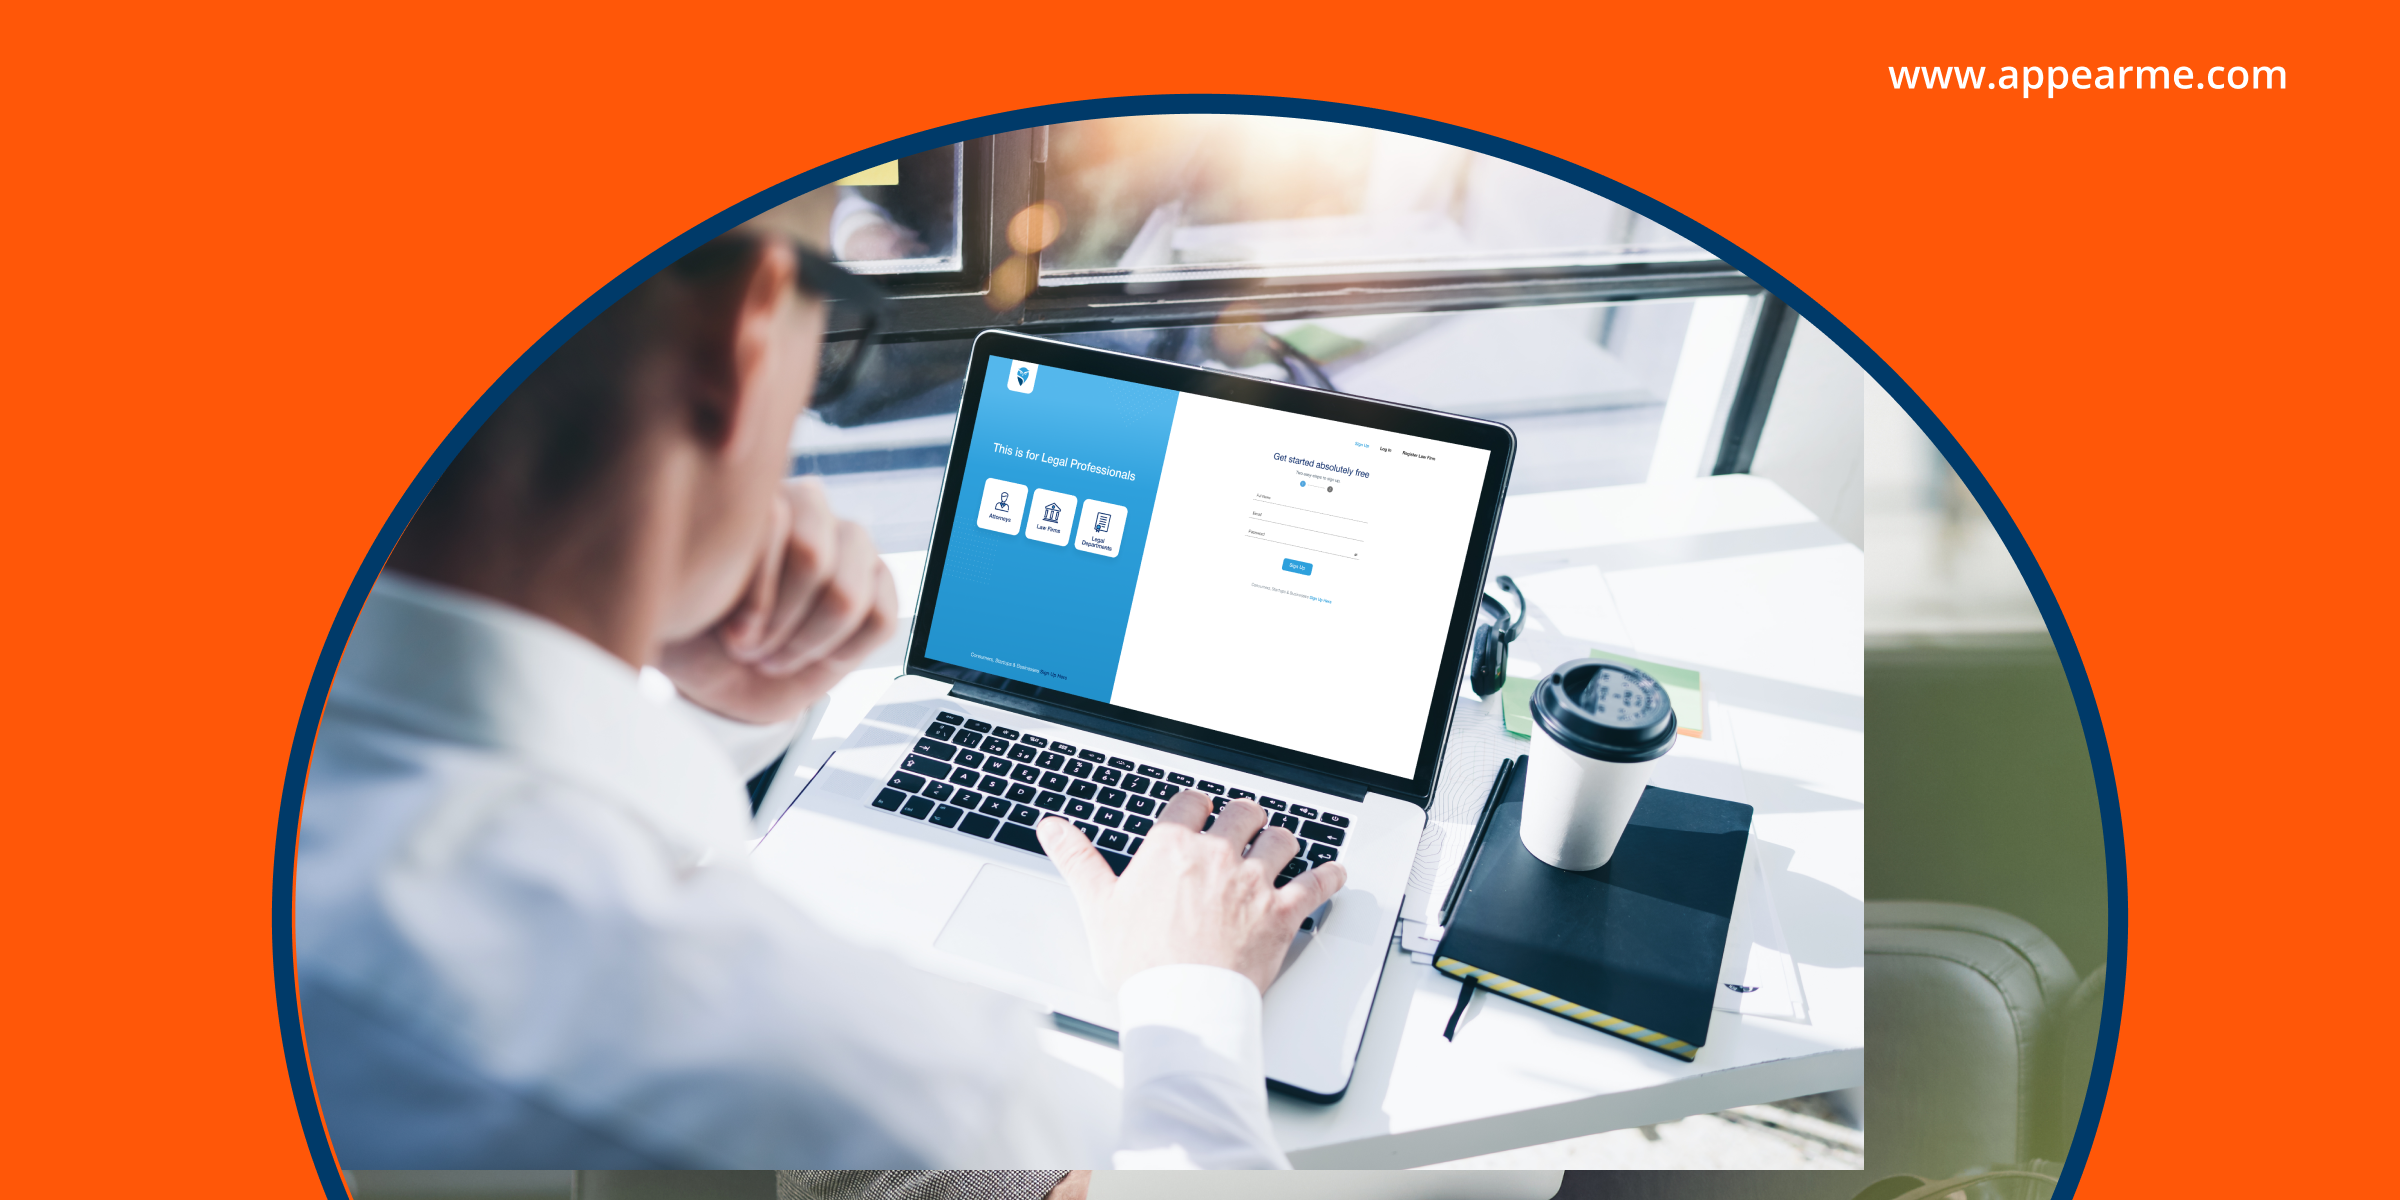 AppearMe – the Most Reliable Legal Tool in the Digital Age